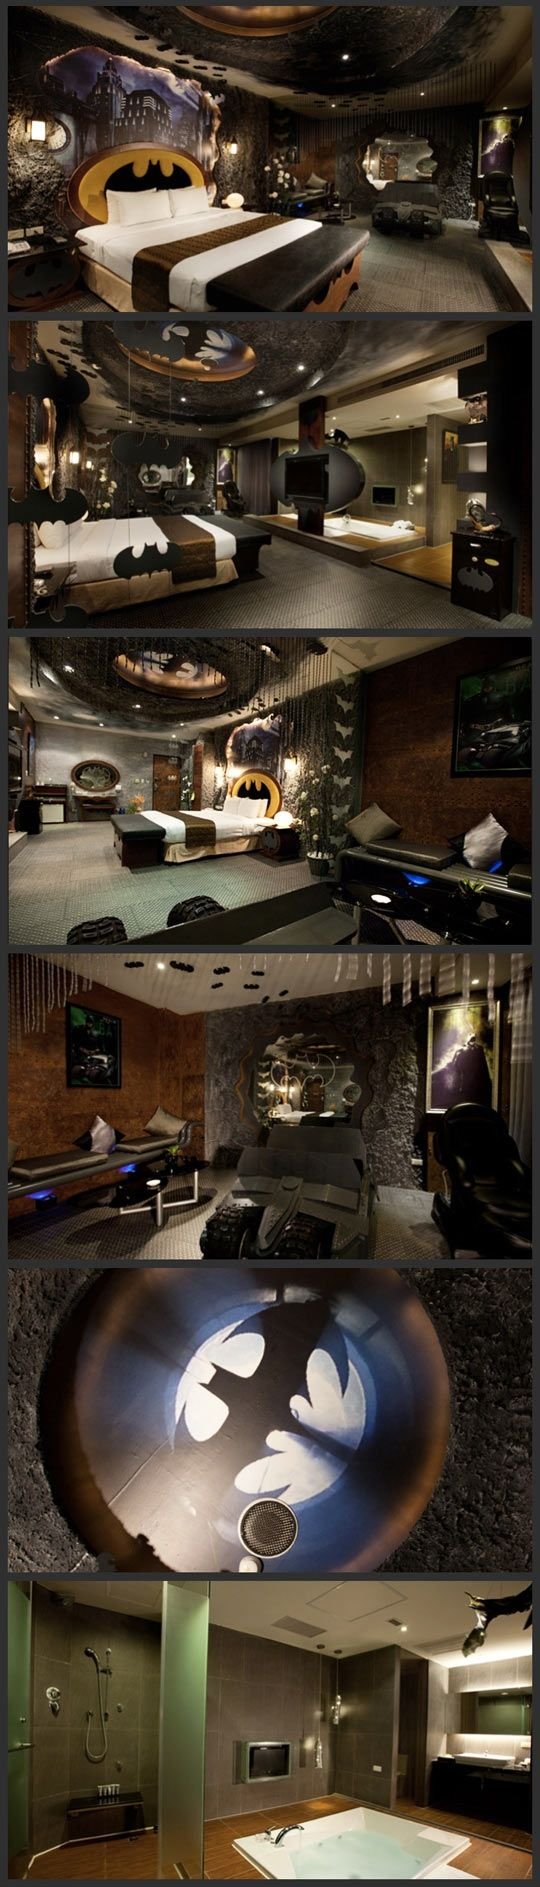 Batman inspired room. The Ultimate Man Cave. MAN CAVE?? I WANT THIS BATCAVE FOR MYSELF.